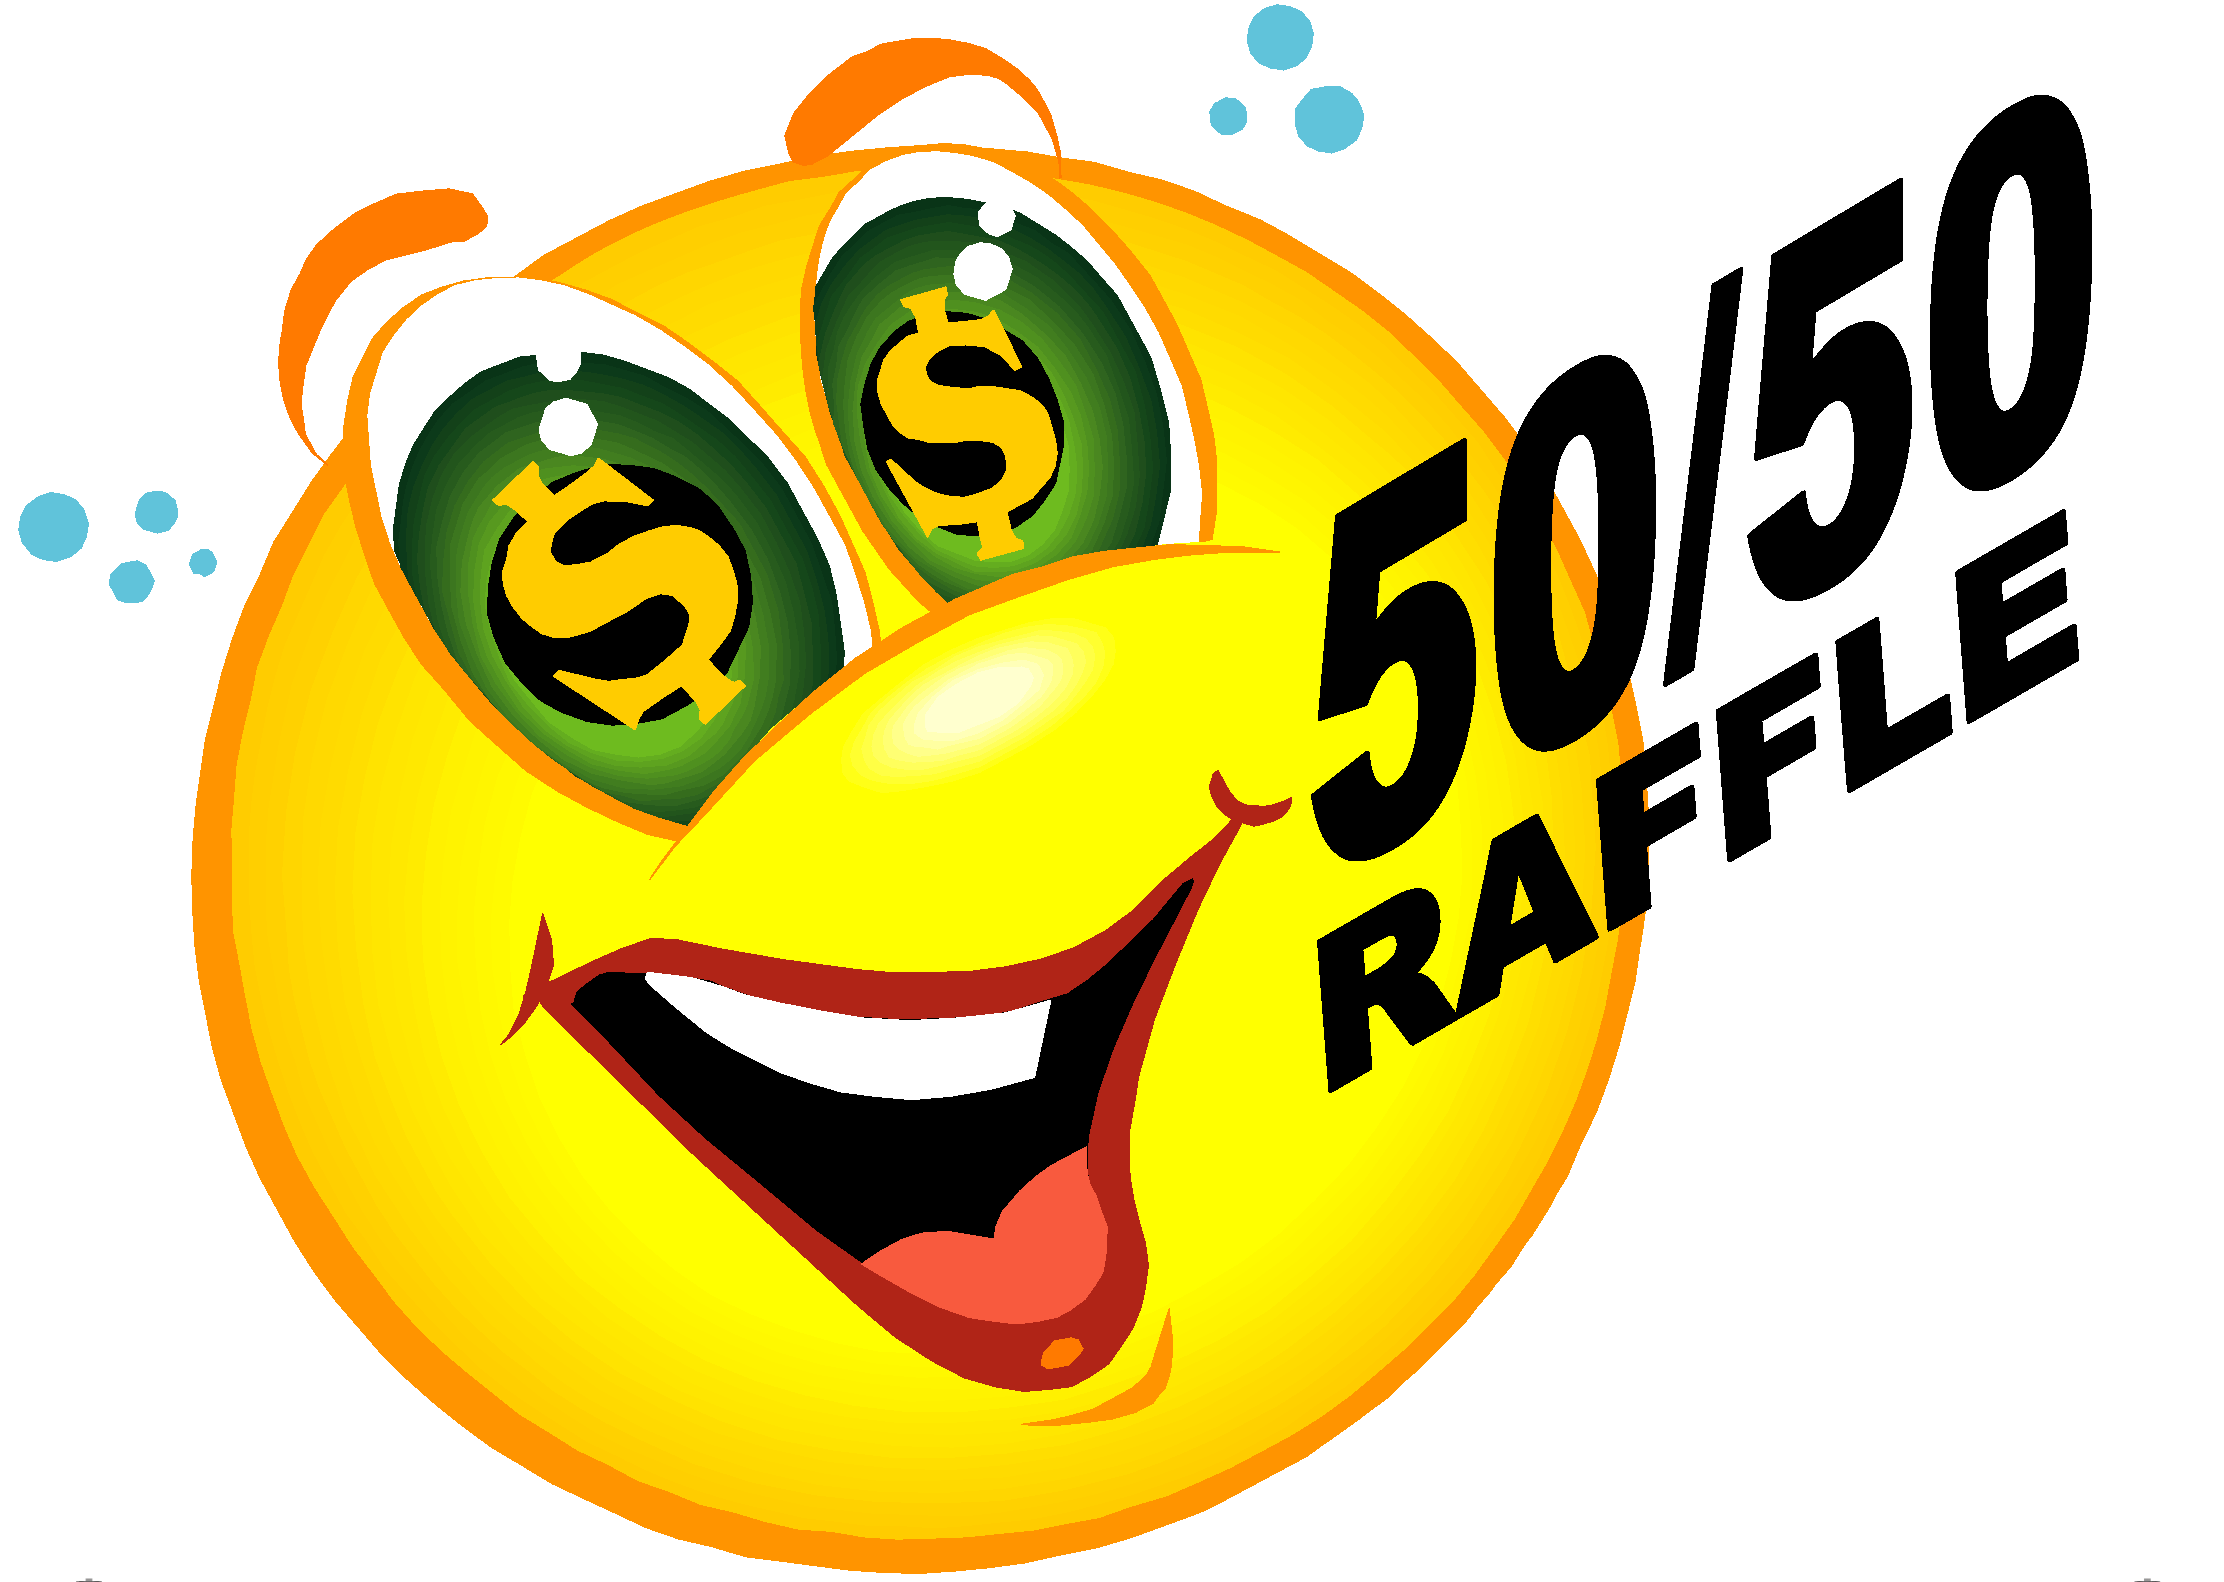 50 50 raffle clipart picture free download 50 50 draw clipart - ClipartFest picture free download